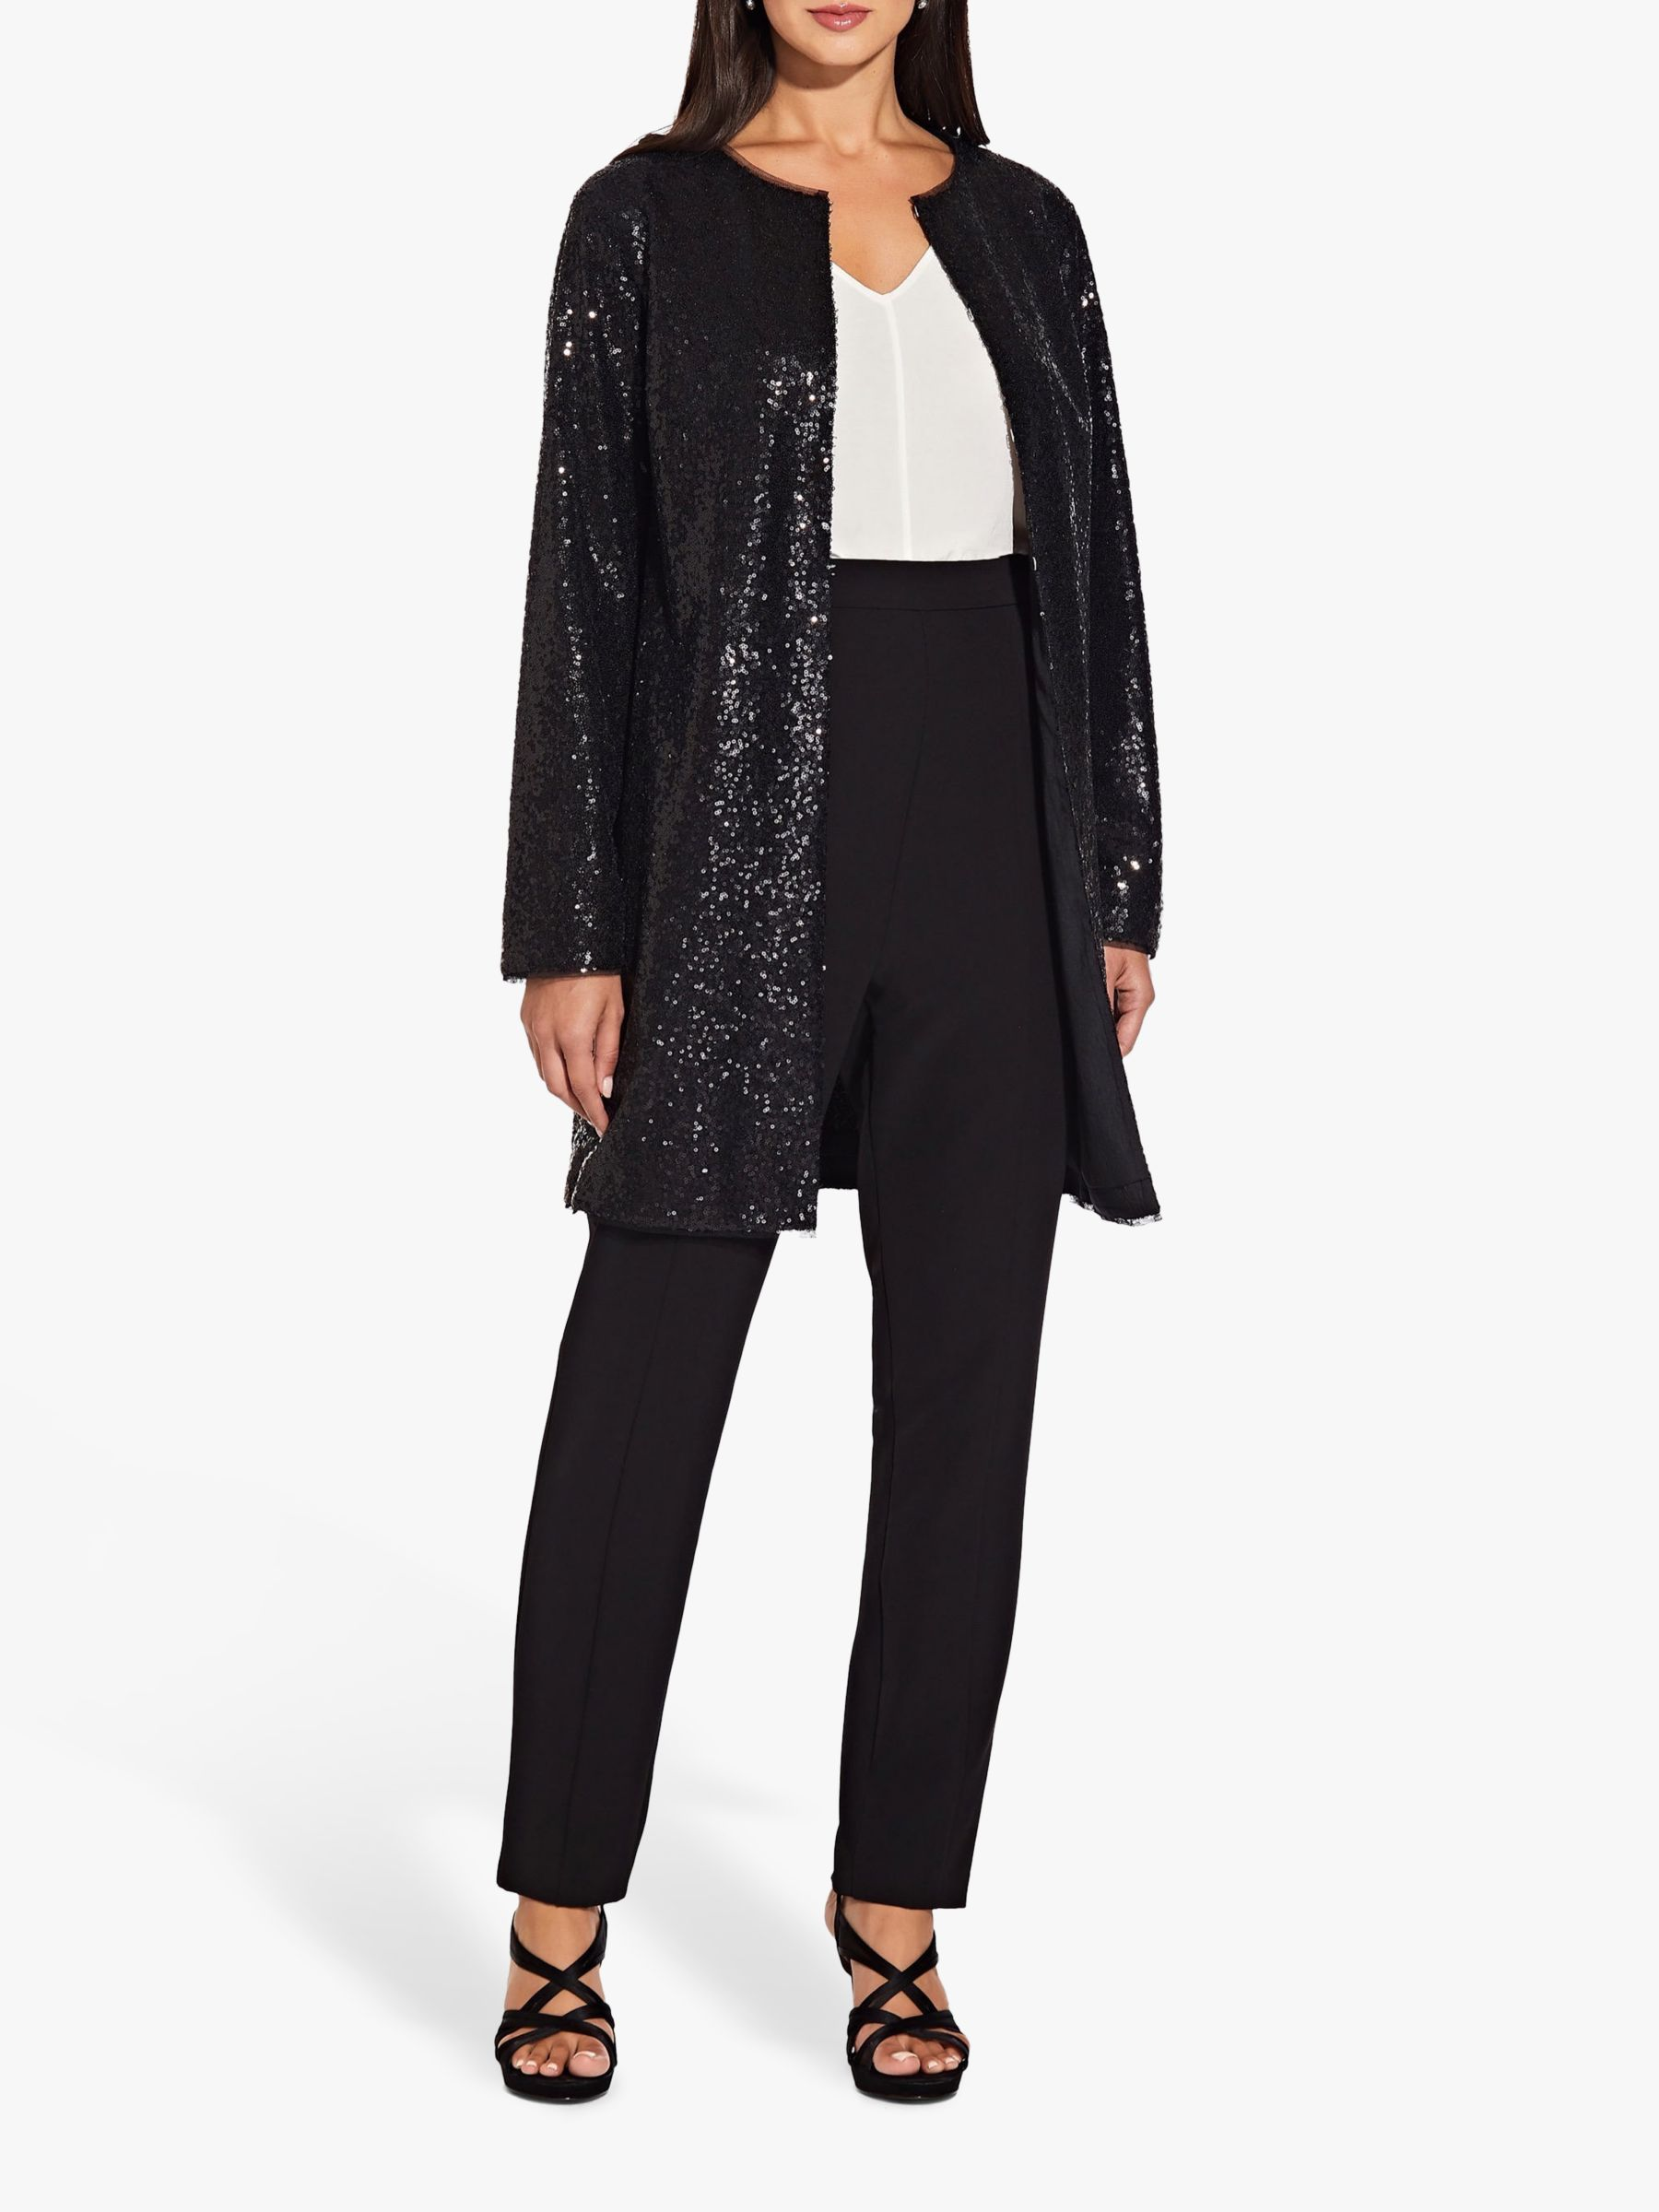 Adrianna Papell Adrianna Papell All Over Sequin Coat, Black